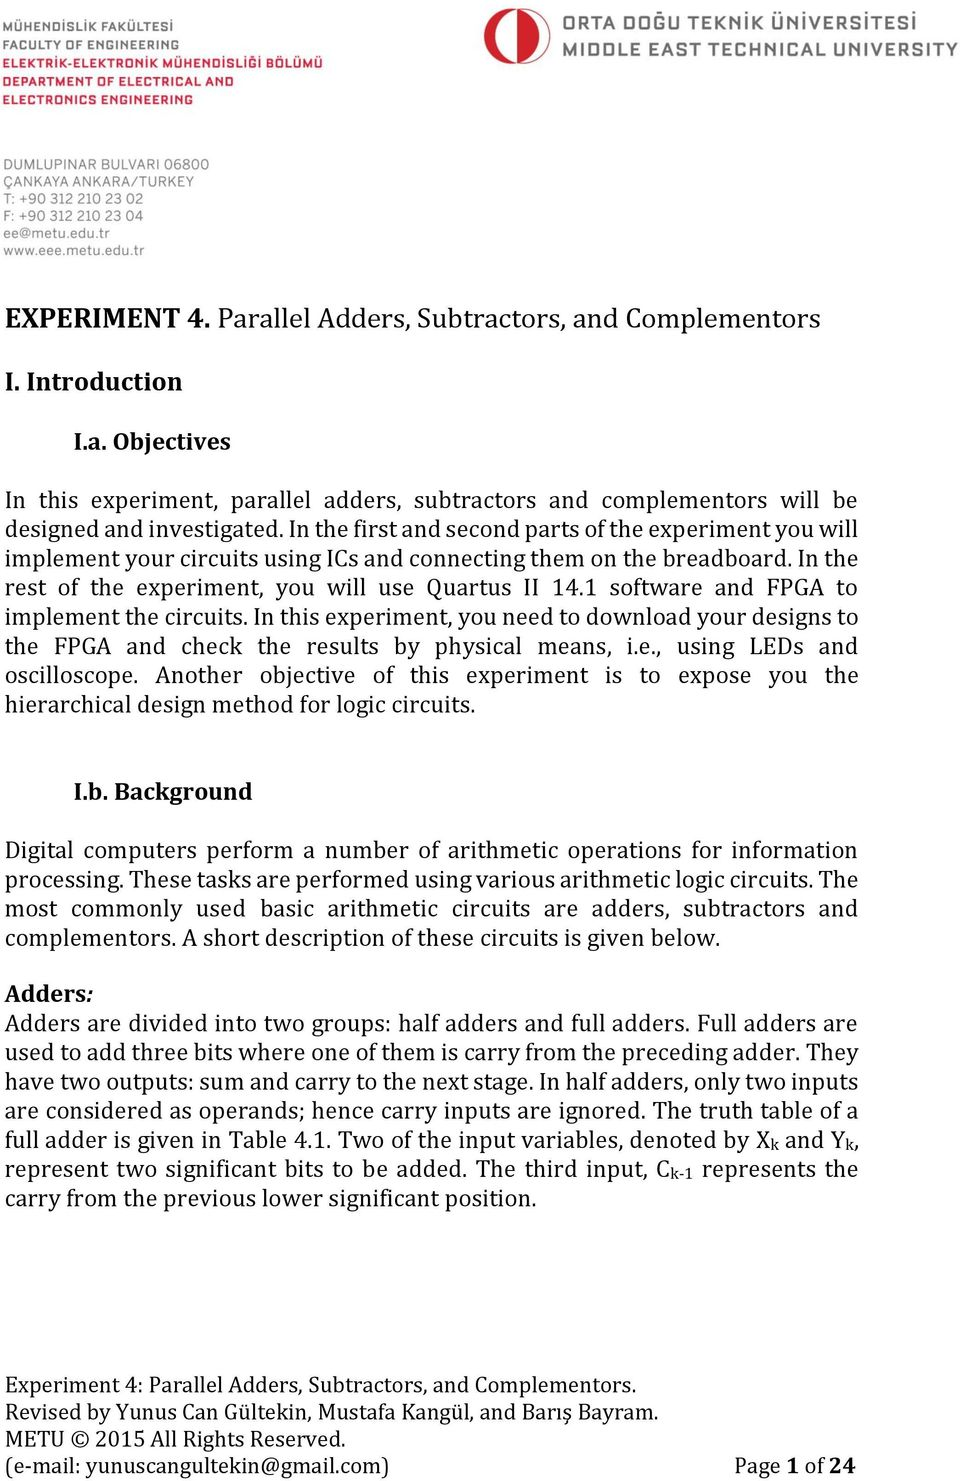 Experiment 4 Parallel Adders Subtractors And Complementors Pdf Full Subtractor A Logic Circuit Which Is Used For Subtracting Three 1 Software Fpga To Implement The Circuits In This You Need